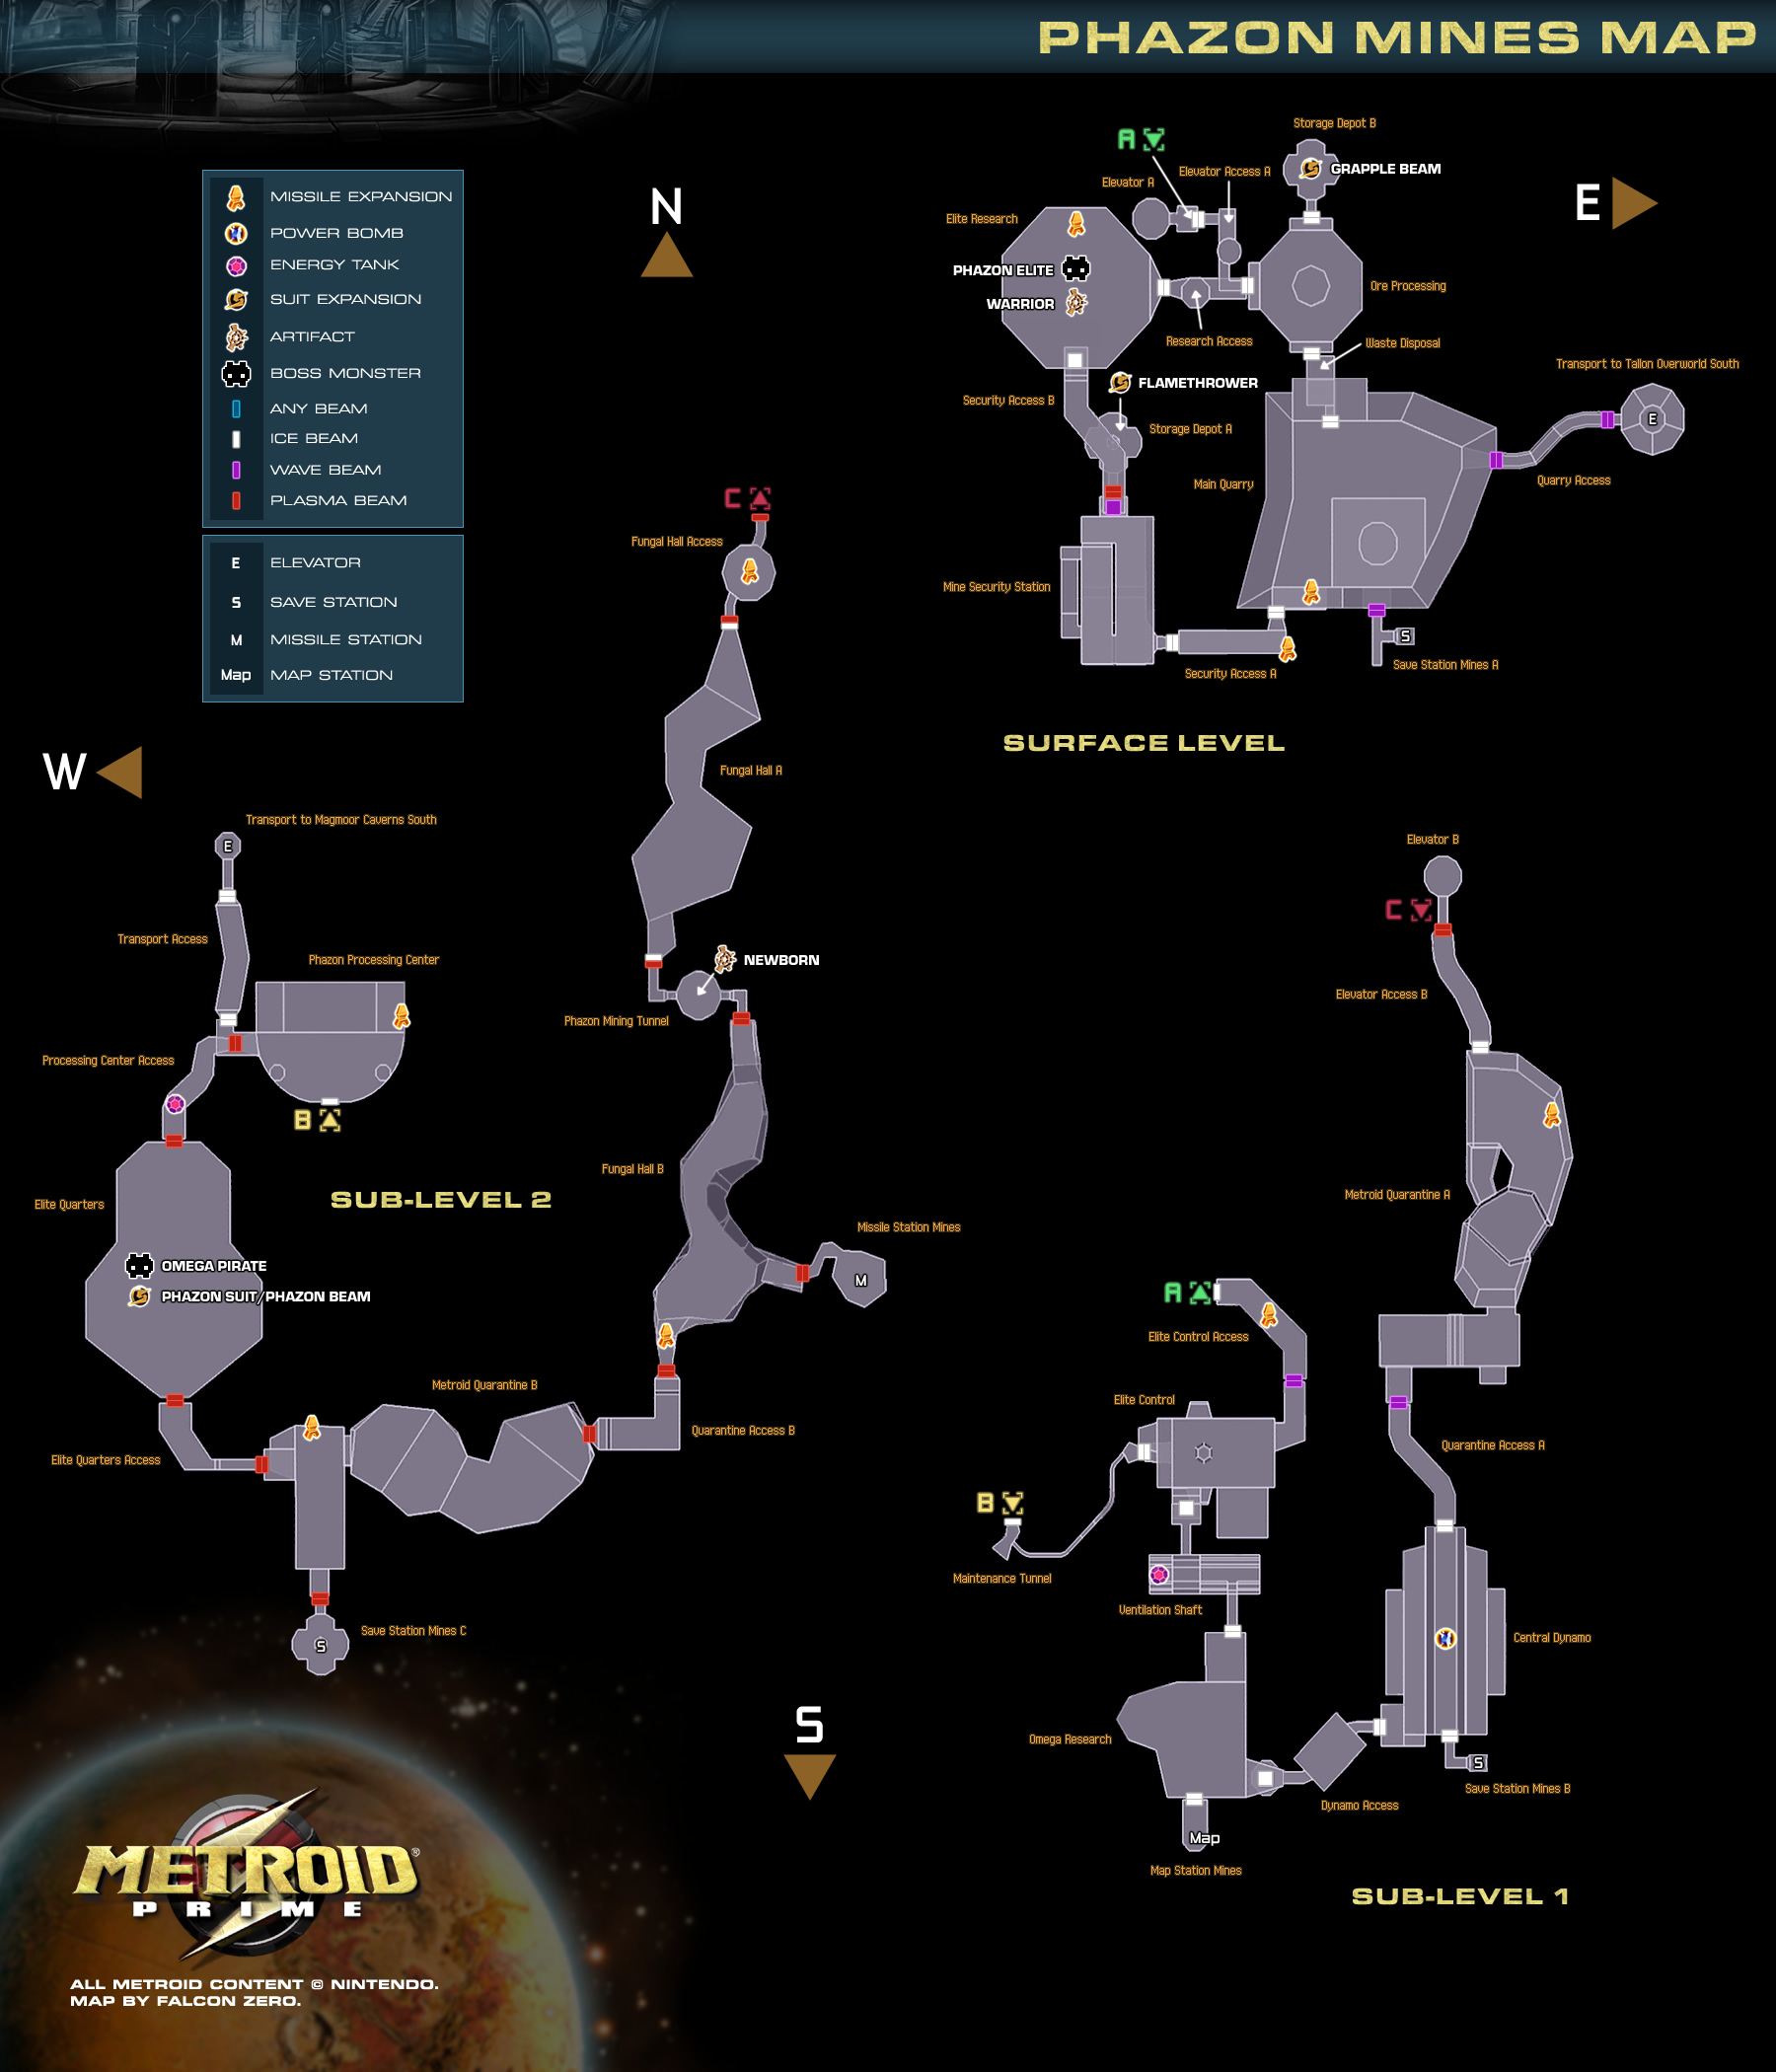 Game maps - Metroid Prime (Metroid Recon) Omega Ruins Map on wasp map, star trek universe map, space station map, cartier map, gta 5 spaceship parts location map, crystal map, nike map, nelson map, deming map, albany map, gorgon map, star fleet universe map, american empire map, star trek galactic map, newton map, orient map, changjiang map, downtown richmond map, pe map, monroe map,